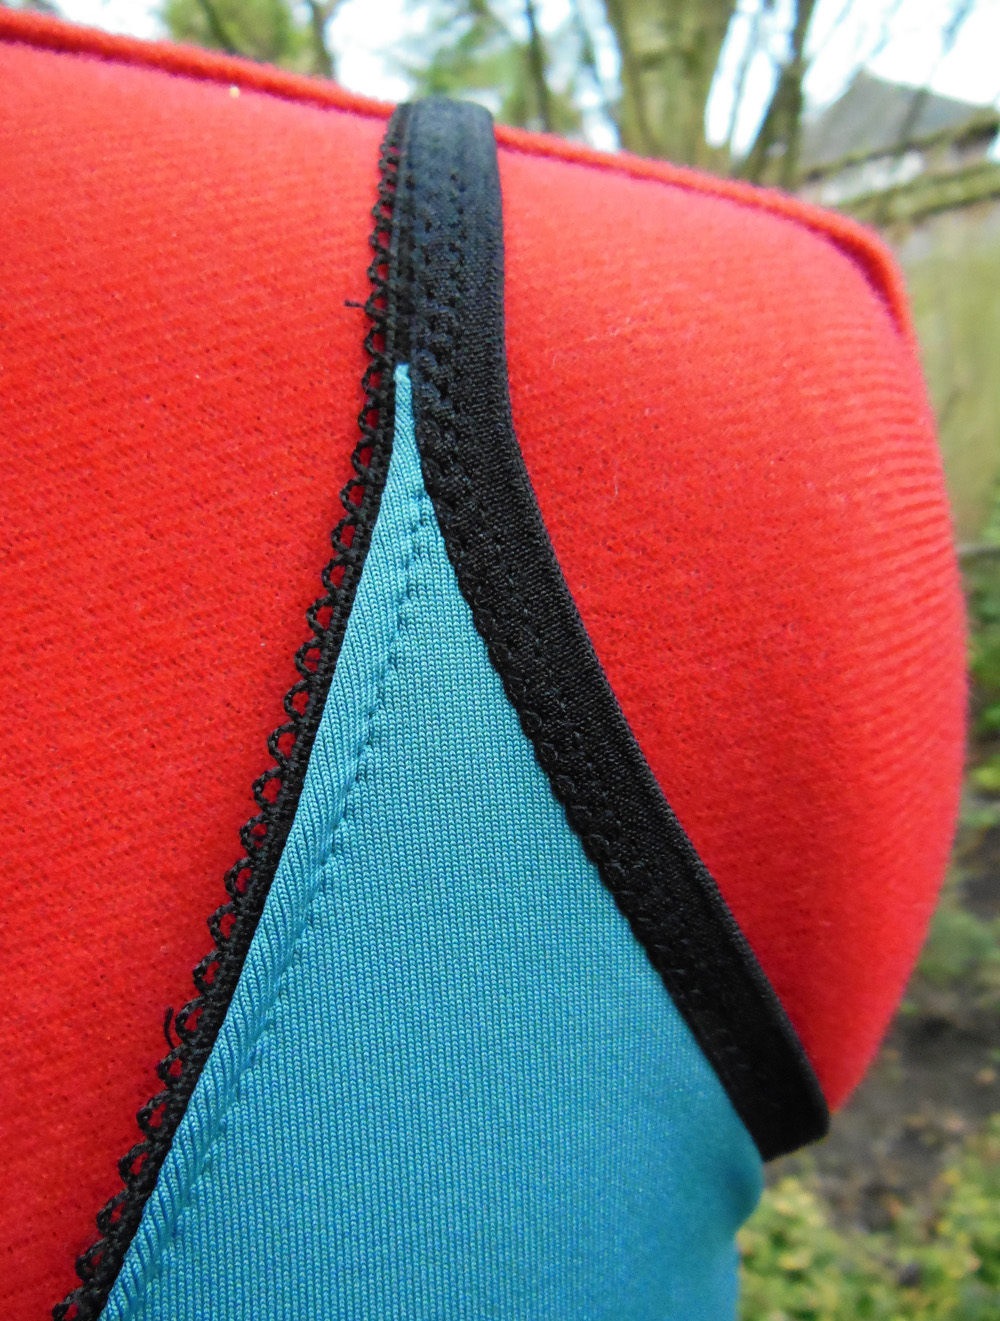 Sporty knit slip tutorial - strap detail | Bicitoro bikes and crafts